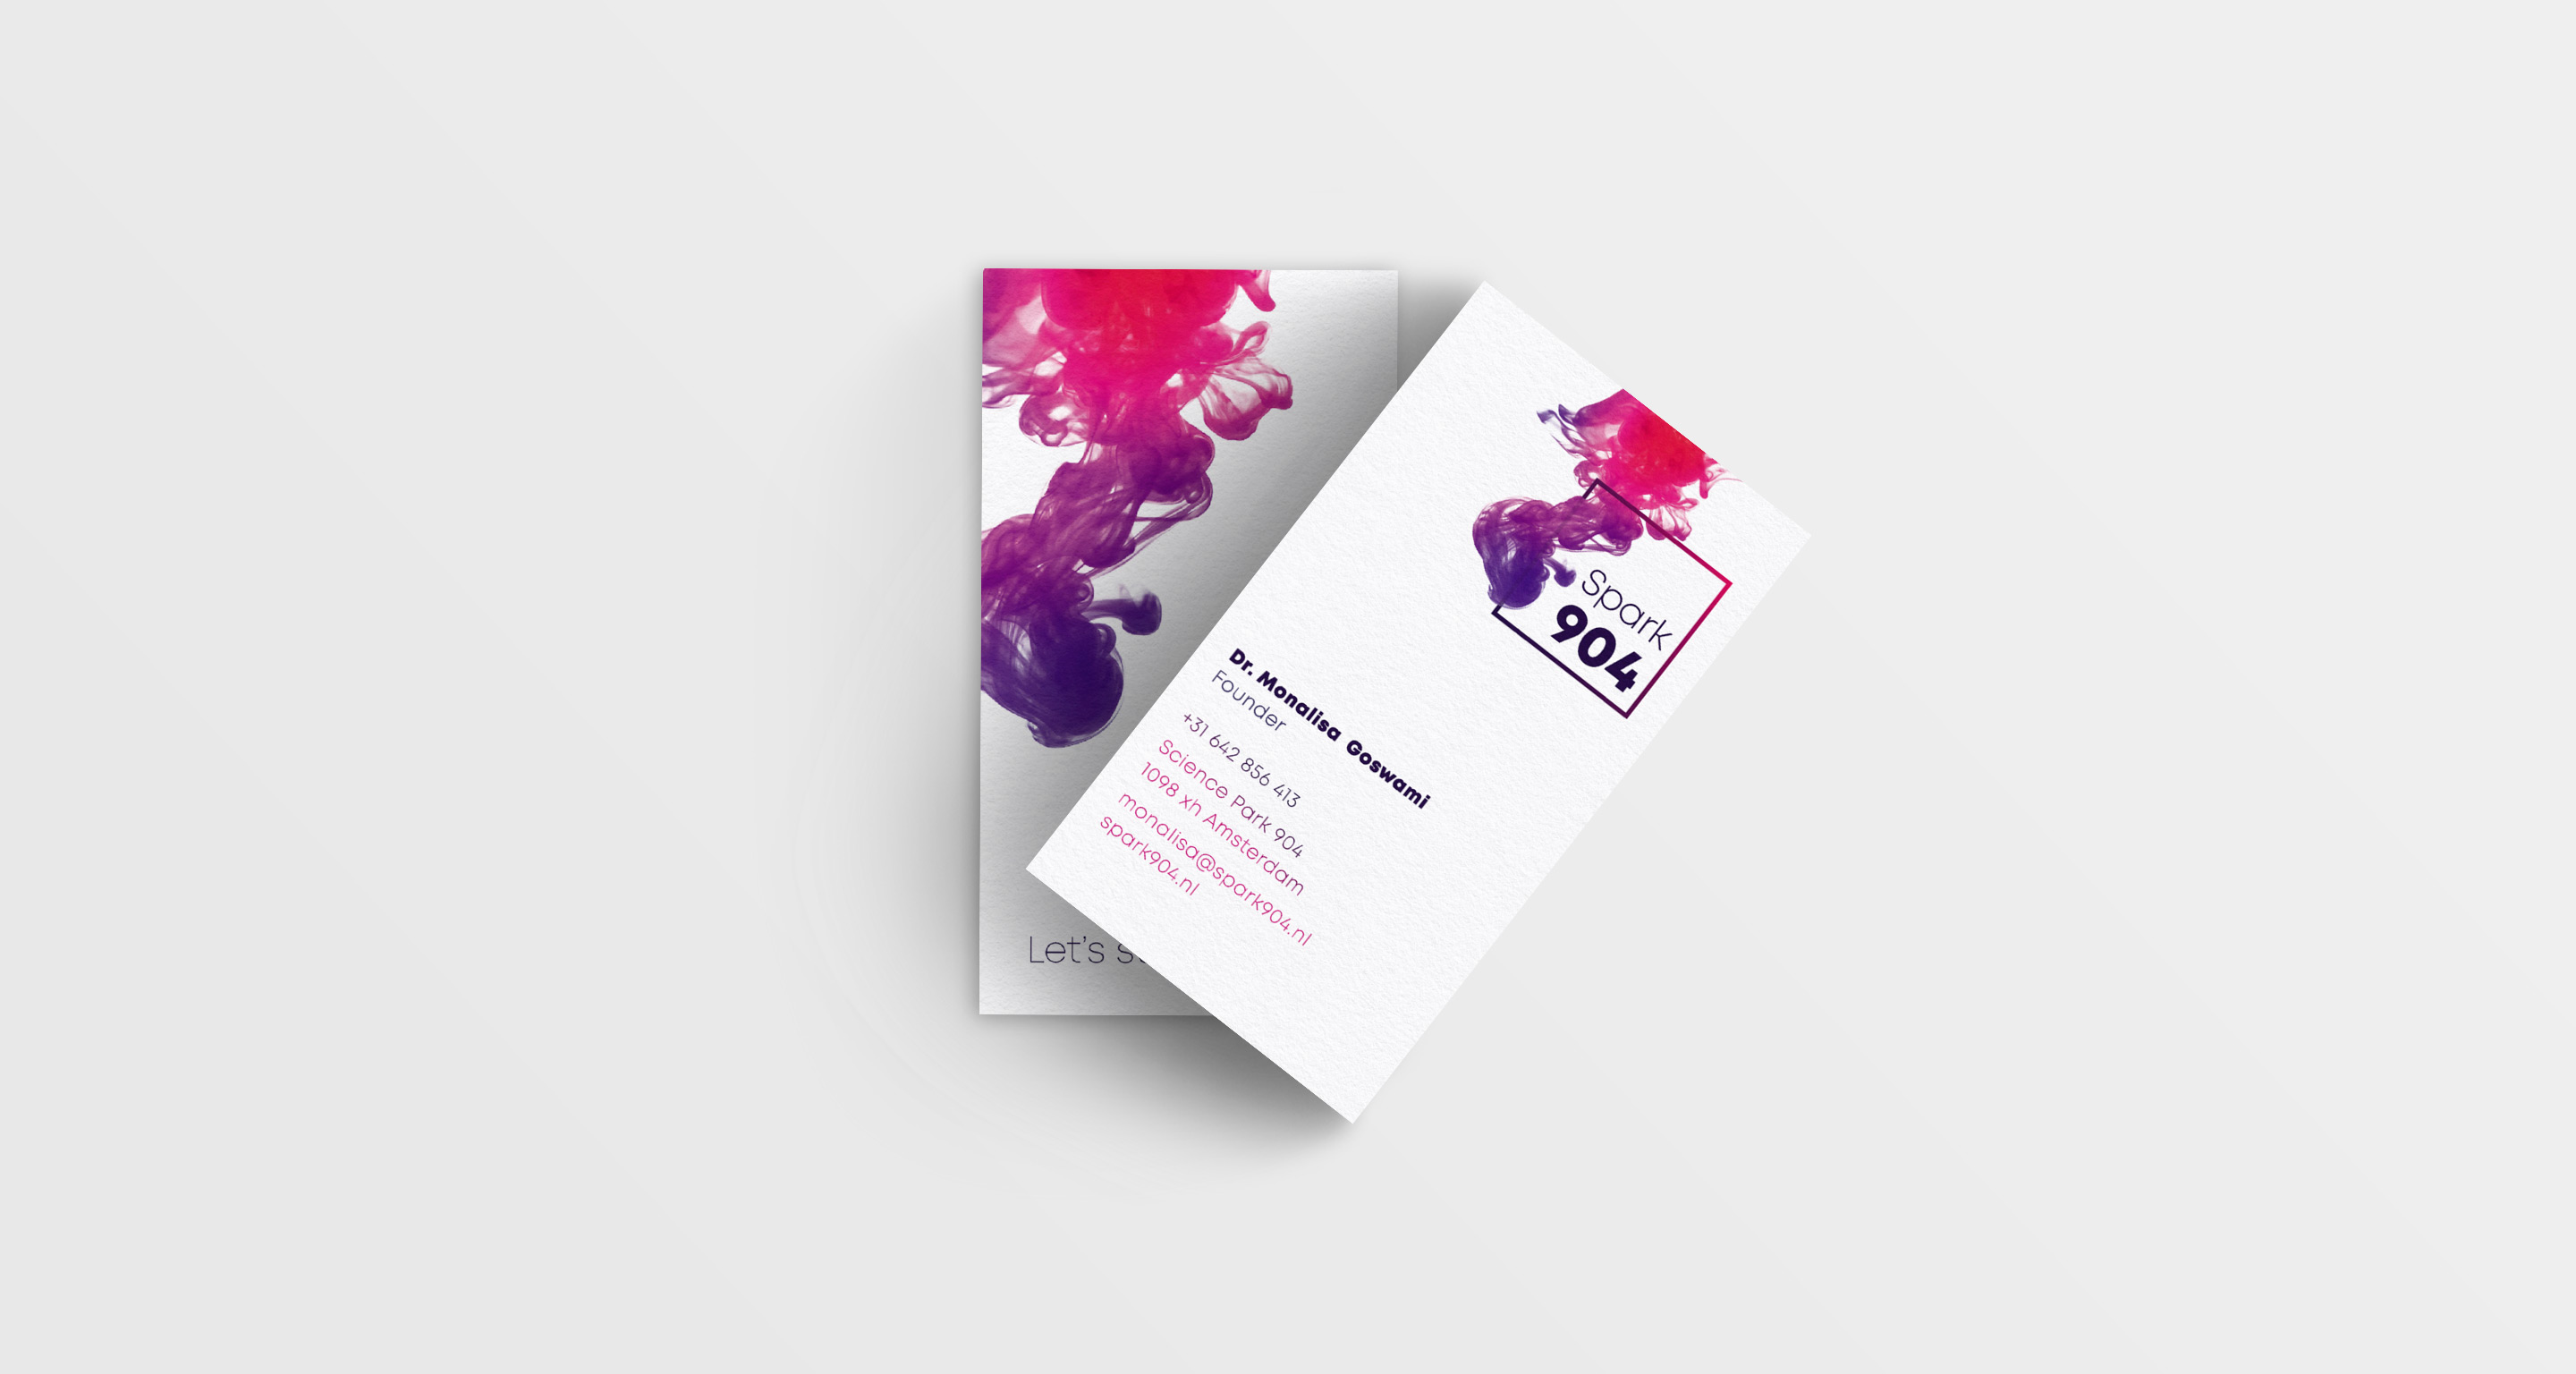 briefpapier businesscards spark904 corporate identity